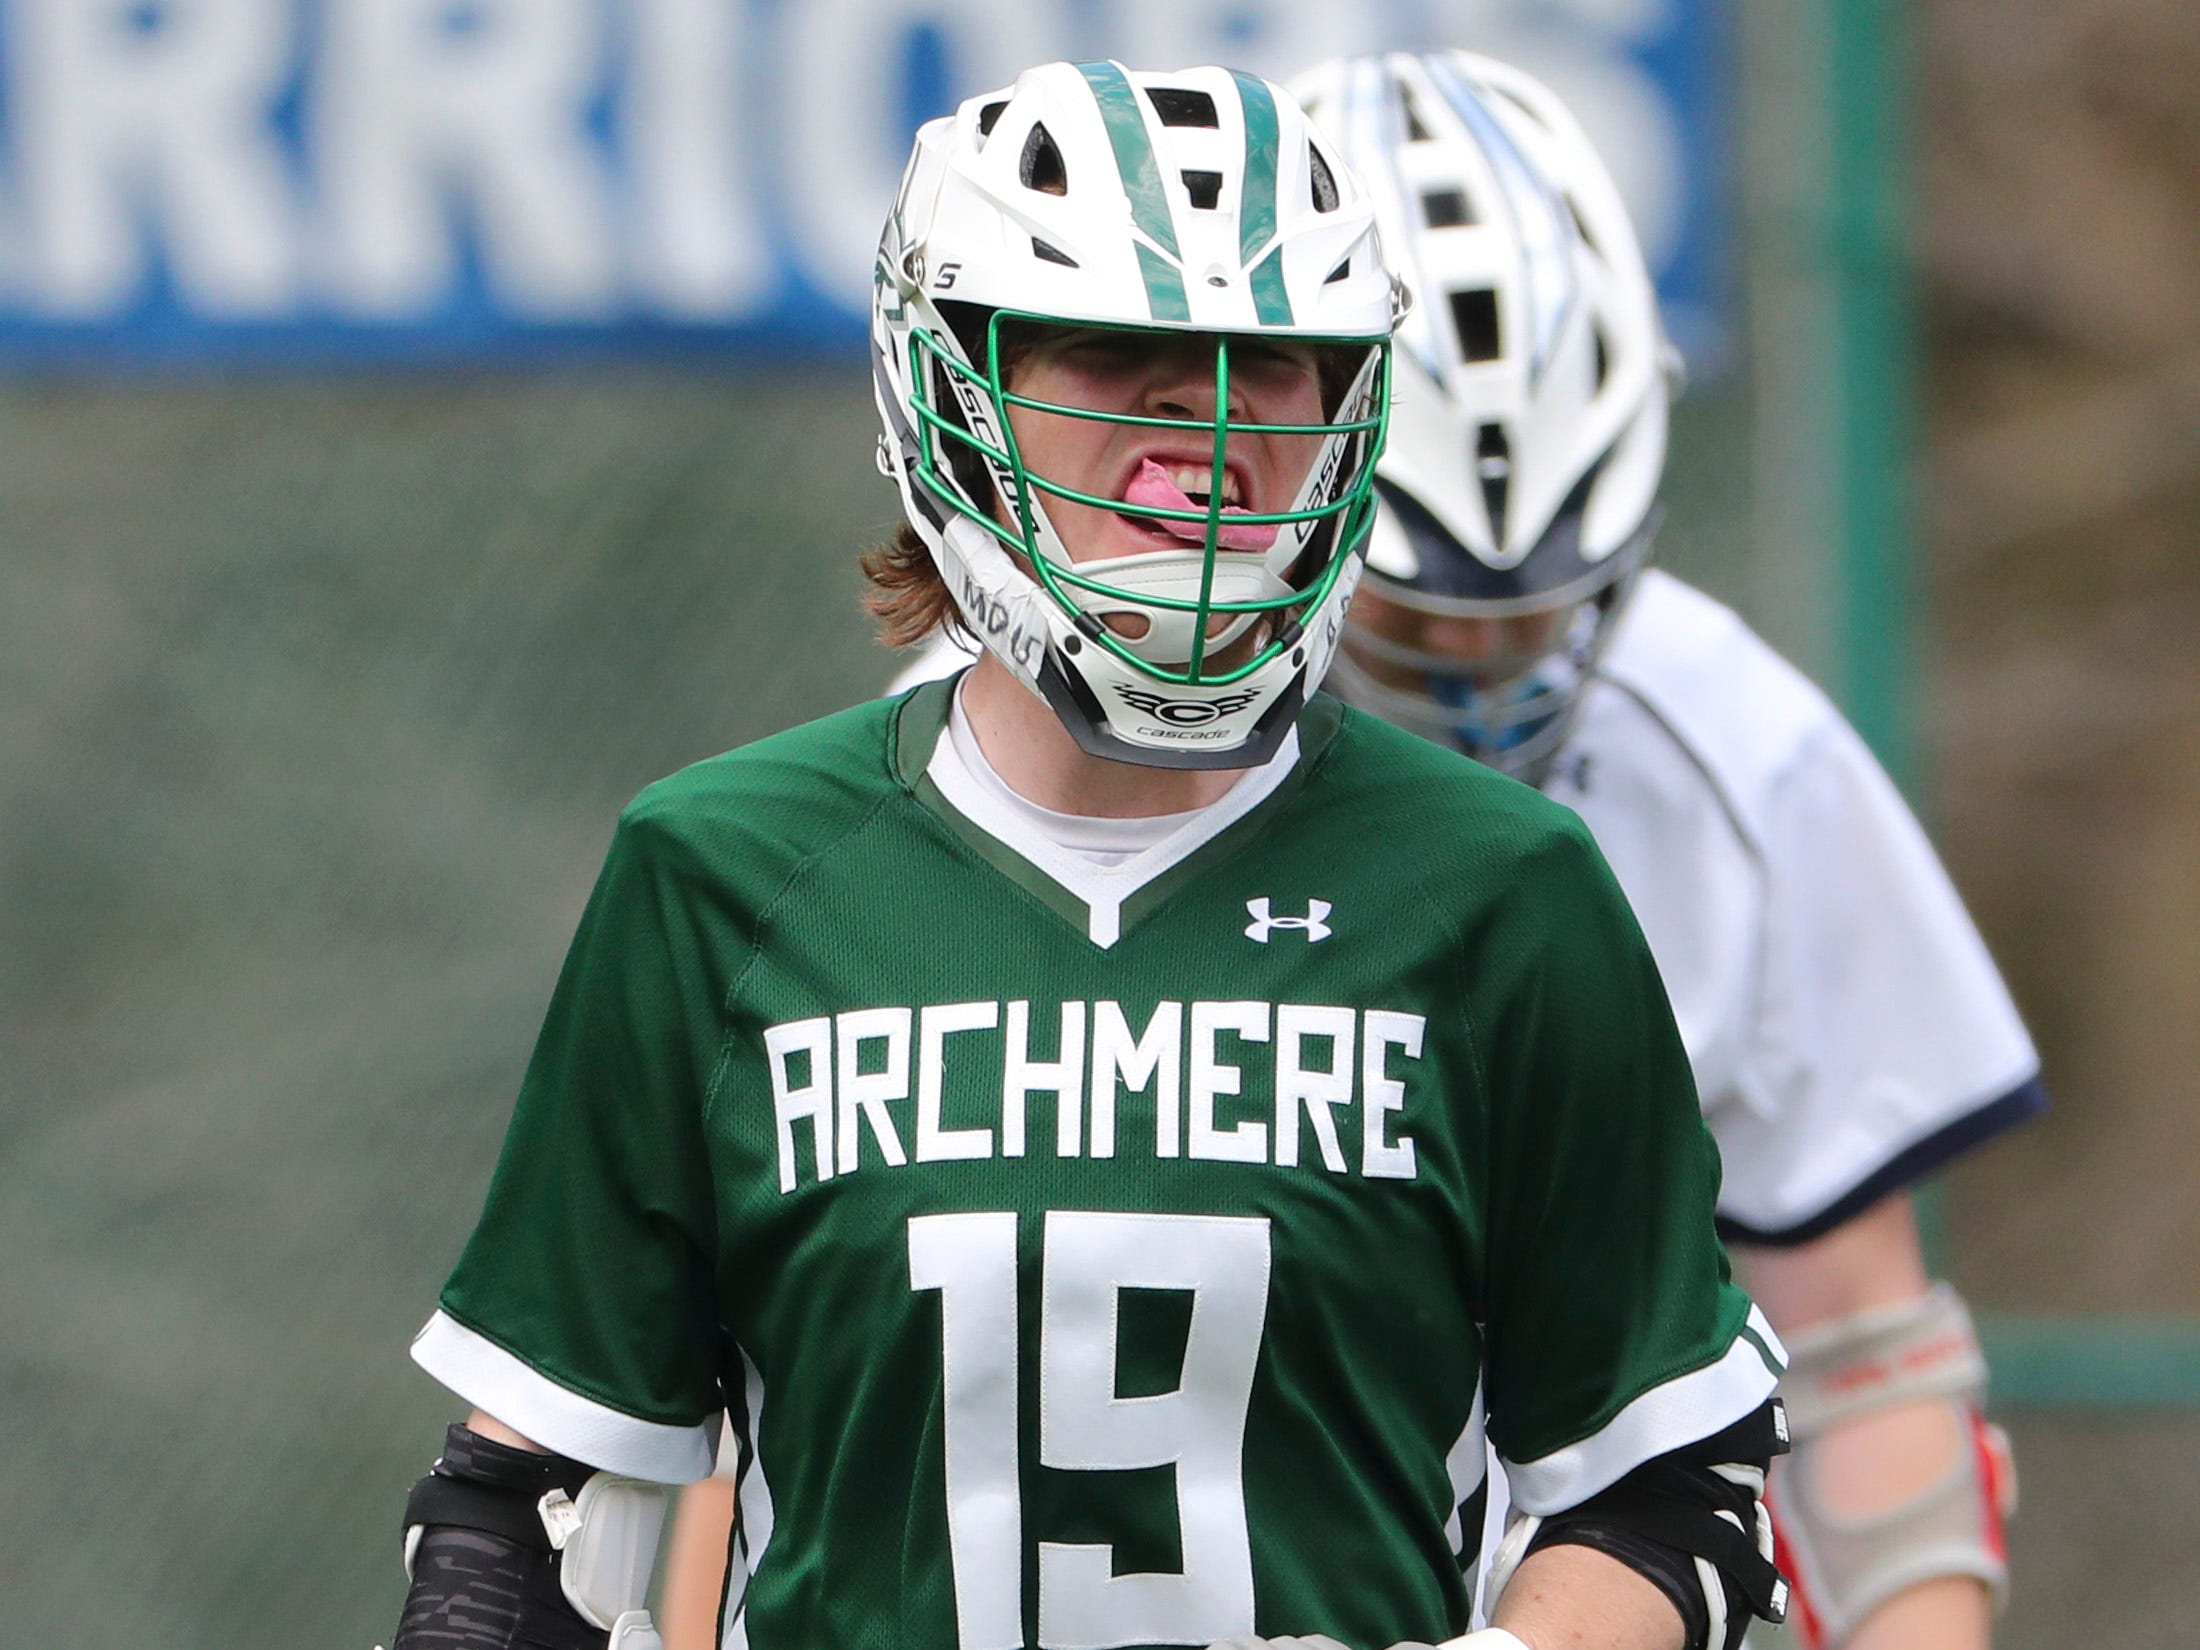 Archmere's Ryan Farrell reacts to a score in the second half of Sanford's 12-10 win Saturday.